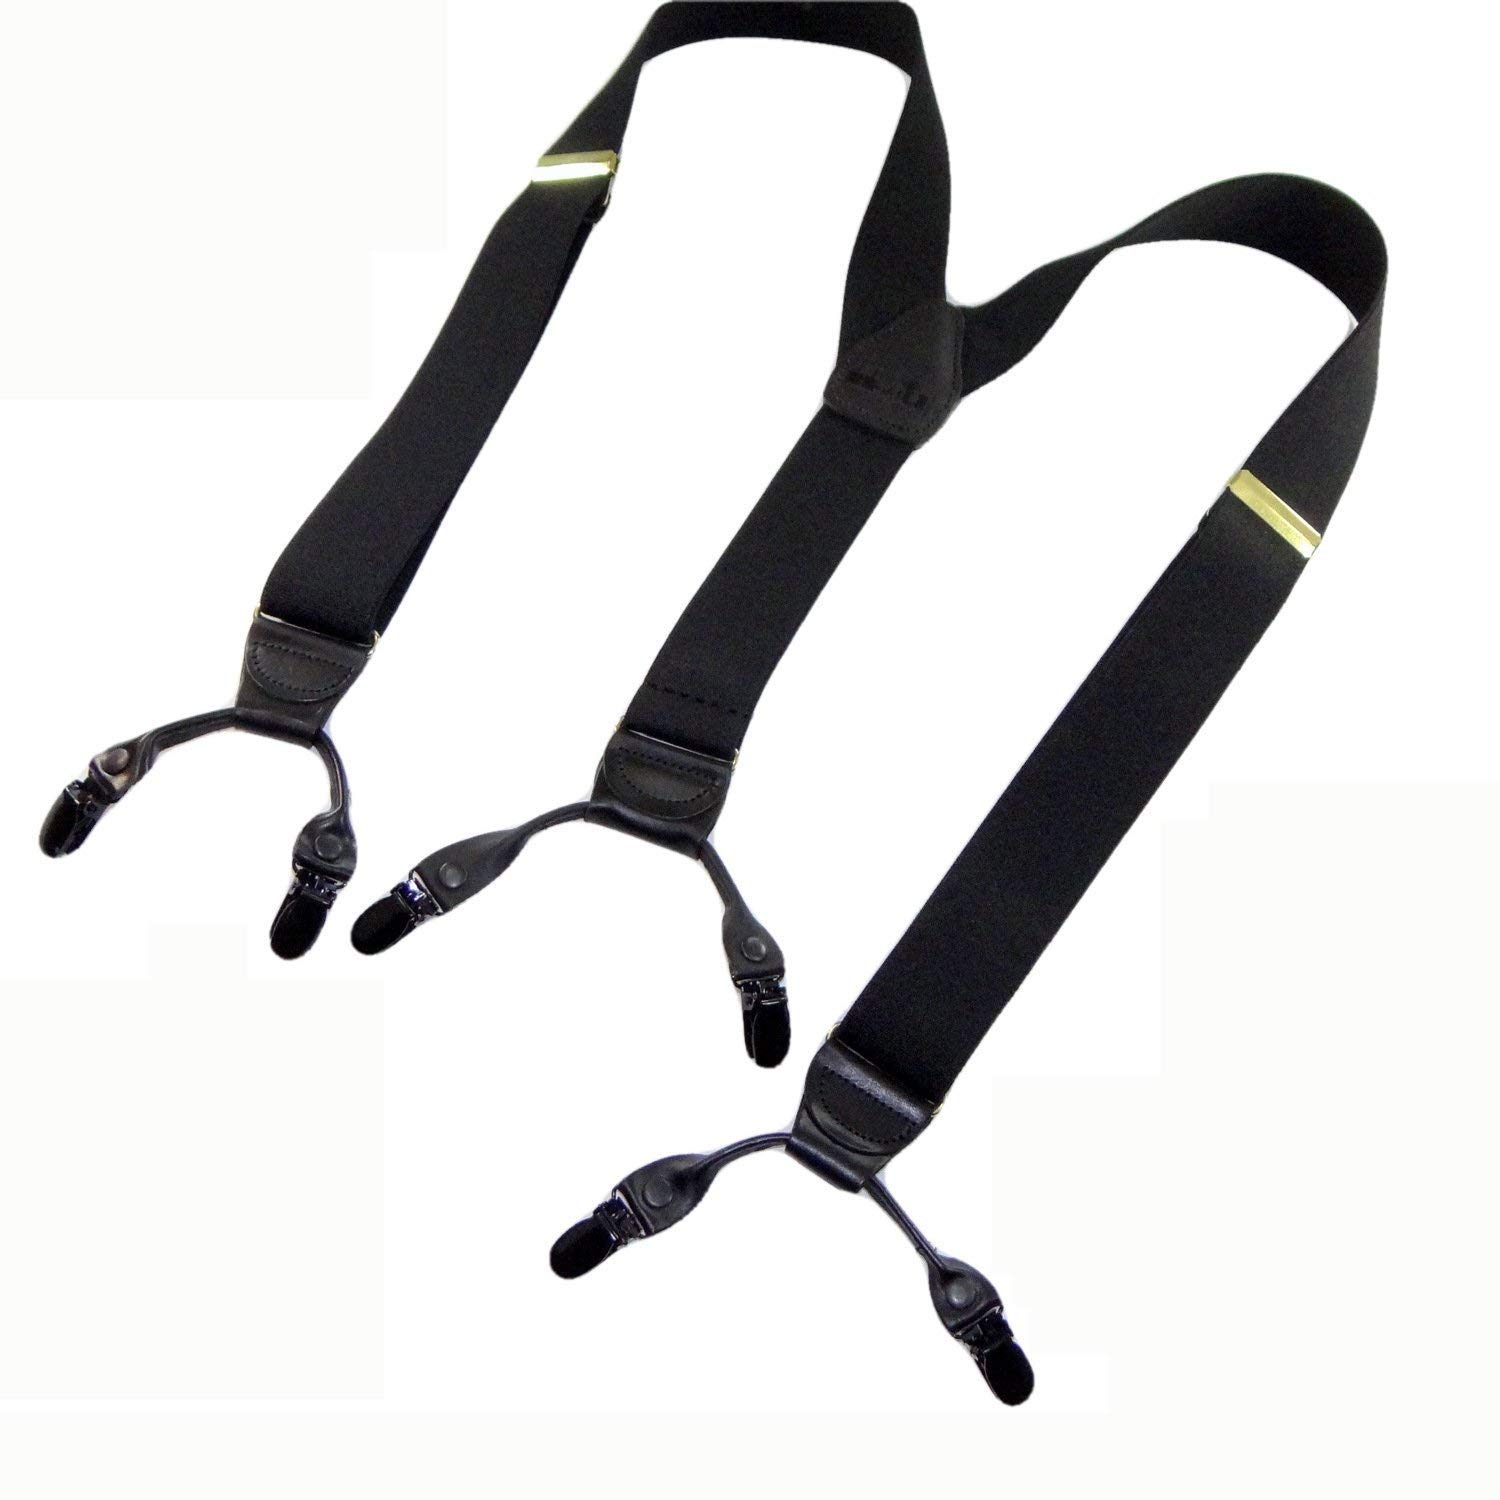 41516cd53fc Get Quotations · HoldUp Suspender Company new Black Pack dual clip  Double-Up Style Suspenders with black patented